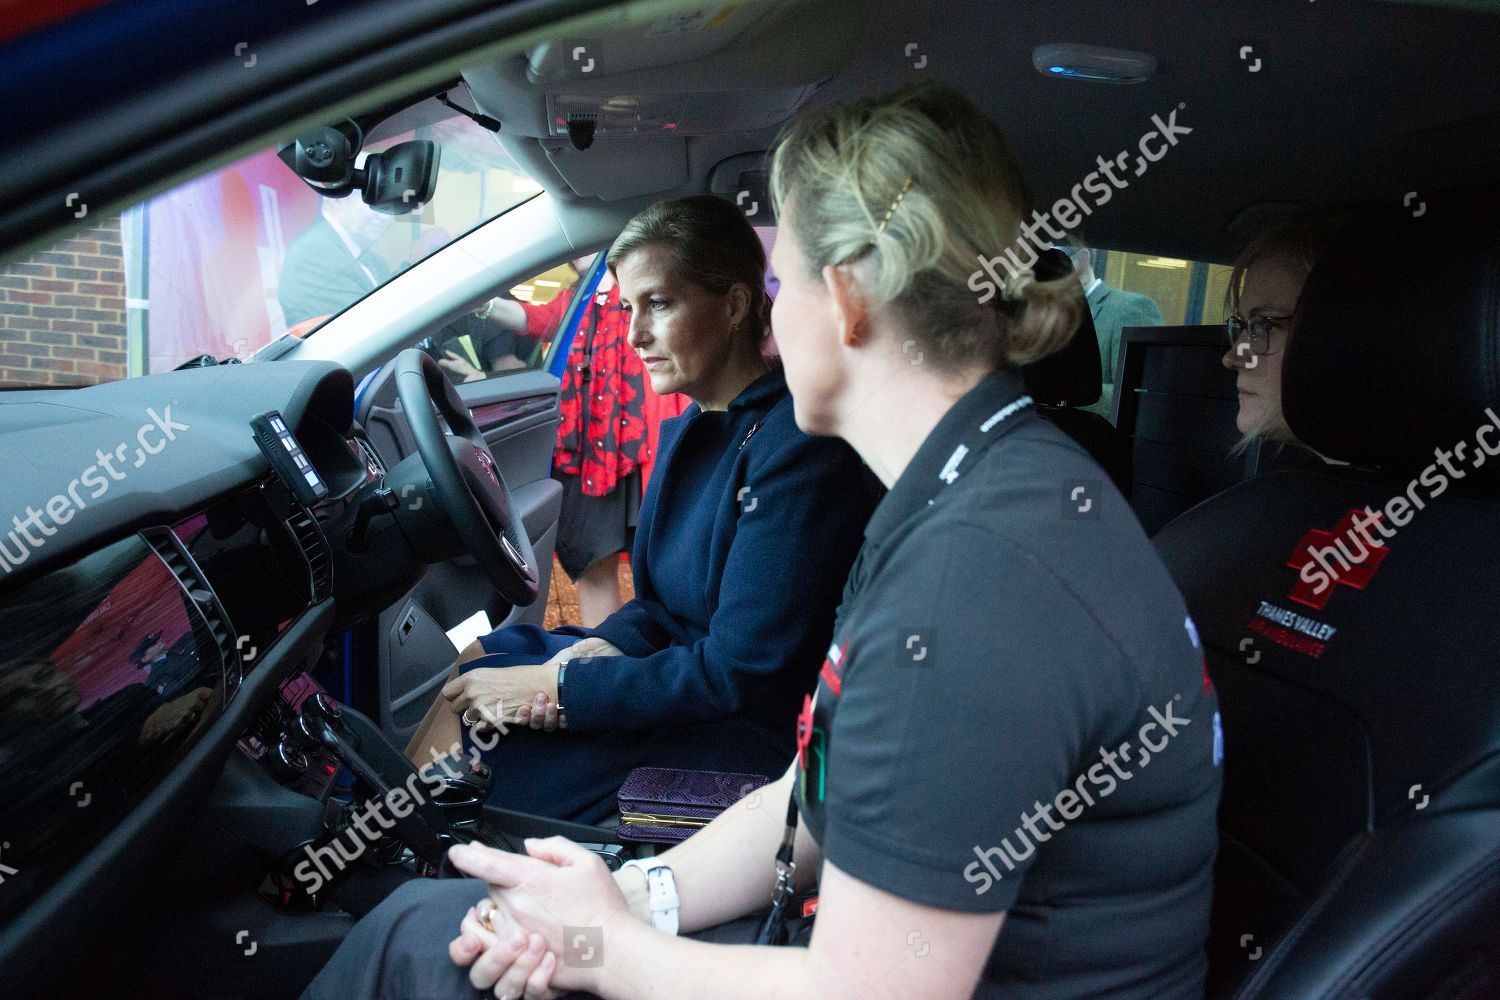 sophie-countess-of-wessex-opens-the-thames-valley-air-ambulance-headquarters-stokenchurch-buckinghamshire-uk-shutterstock-editorial-9968468n.jpg